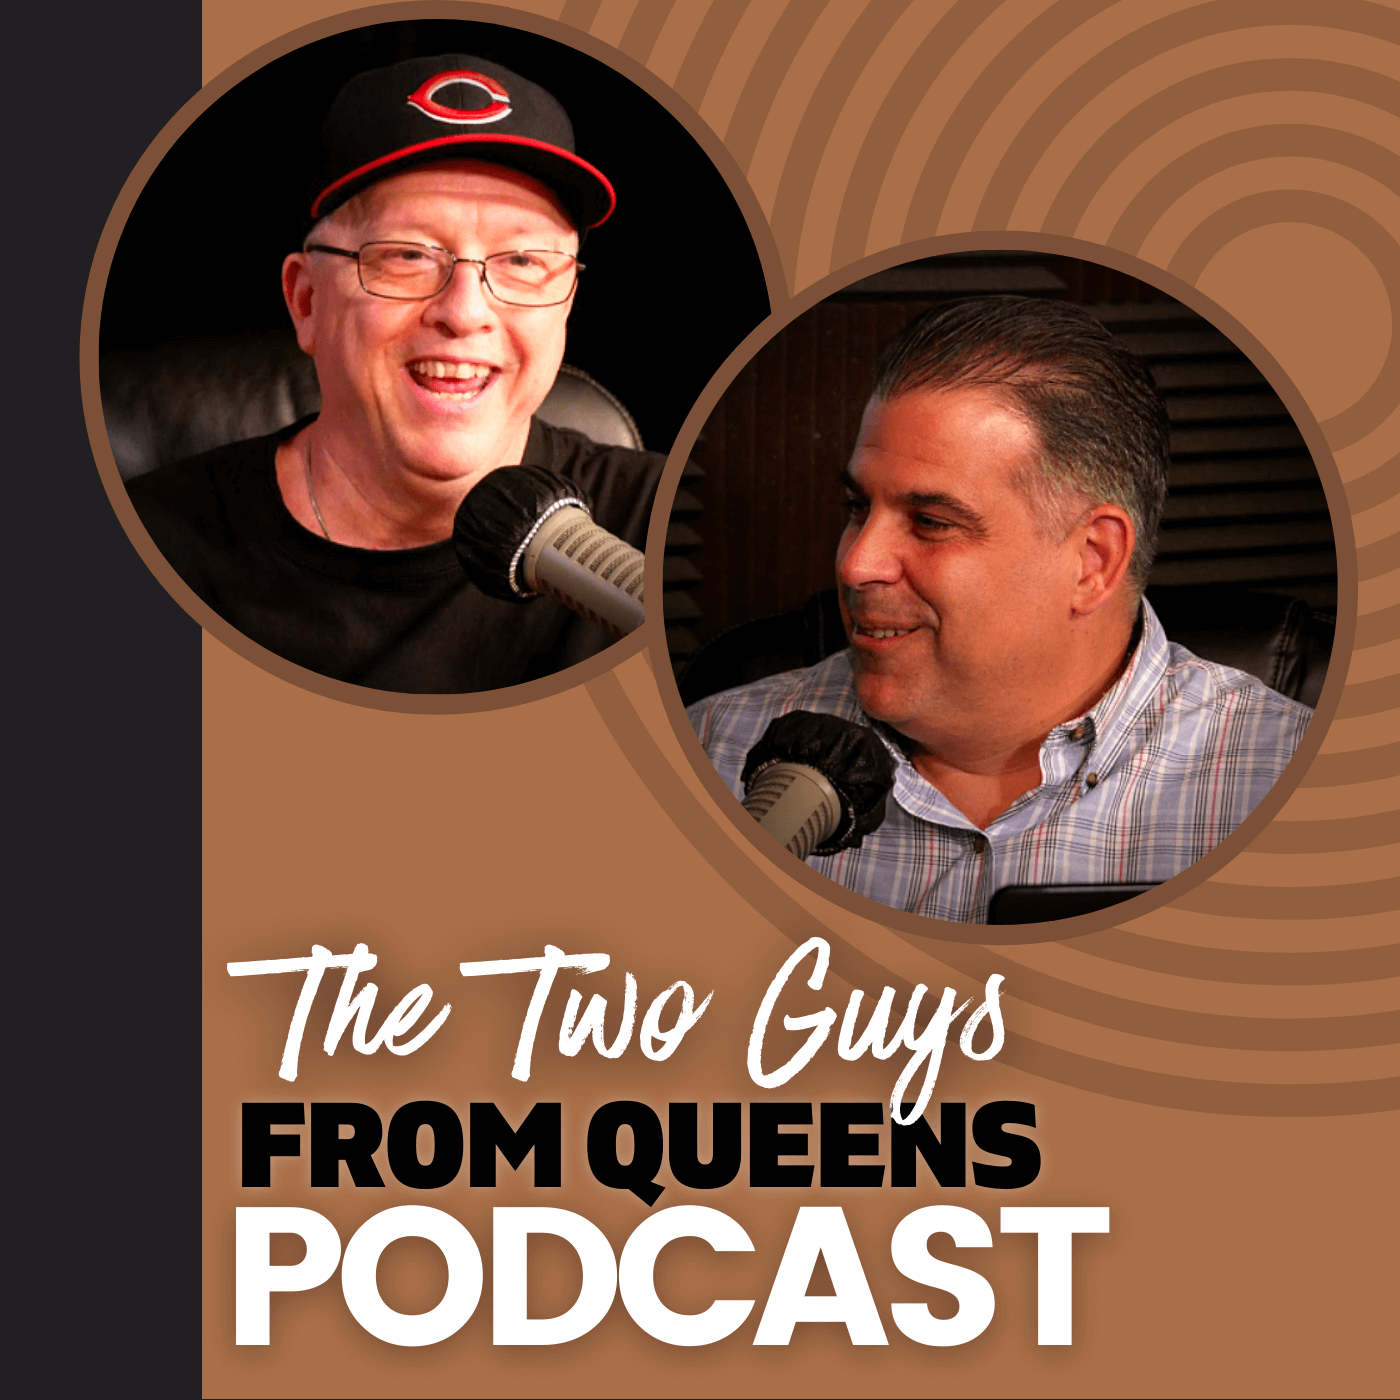 The Two Guys From Queens: The Podcast Every Guy Can Appreciate